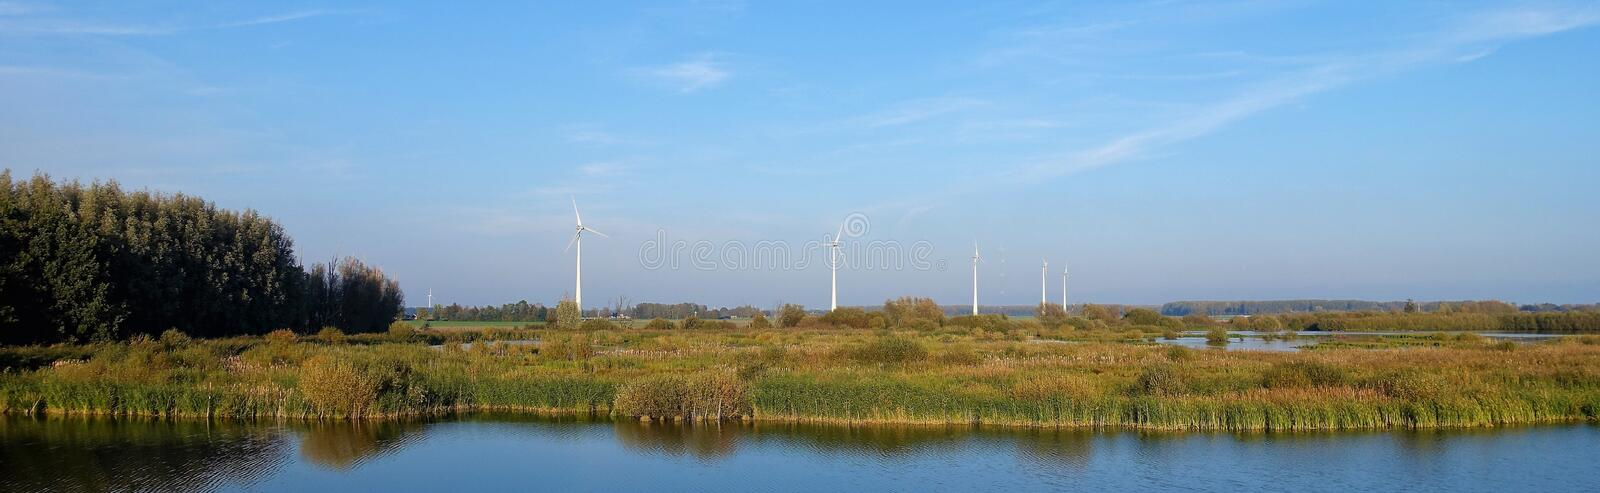 Polder water landscape in Flevoland. The landscape of Zeewolde Flevoland contains the dike, open space, water and nature behind the dike, the sky, trees and royalty free stock images